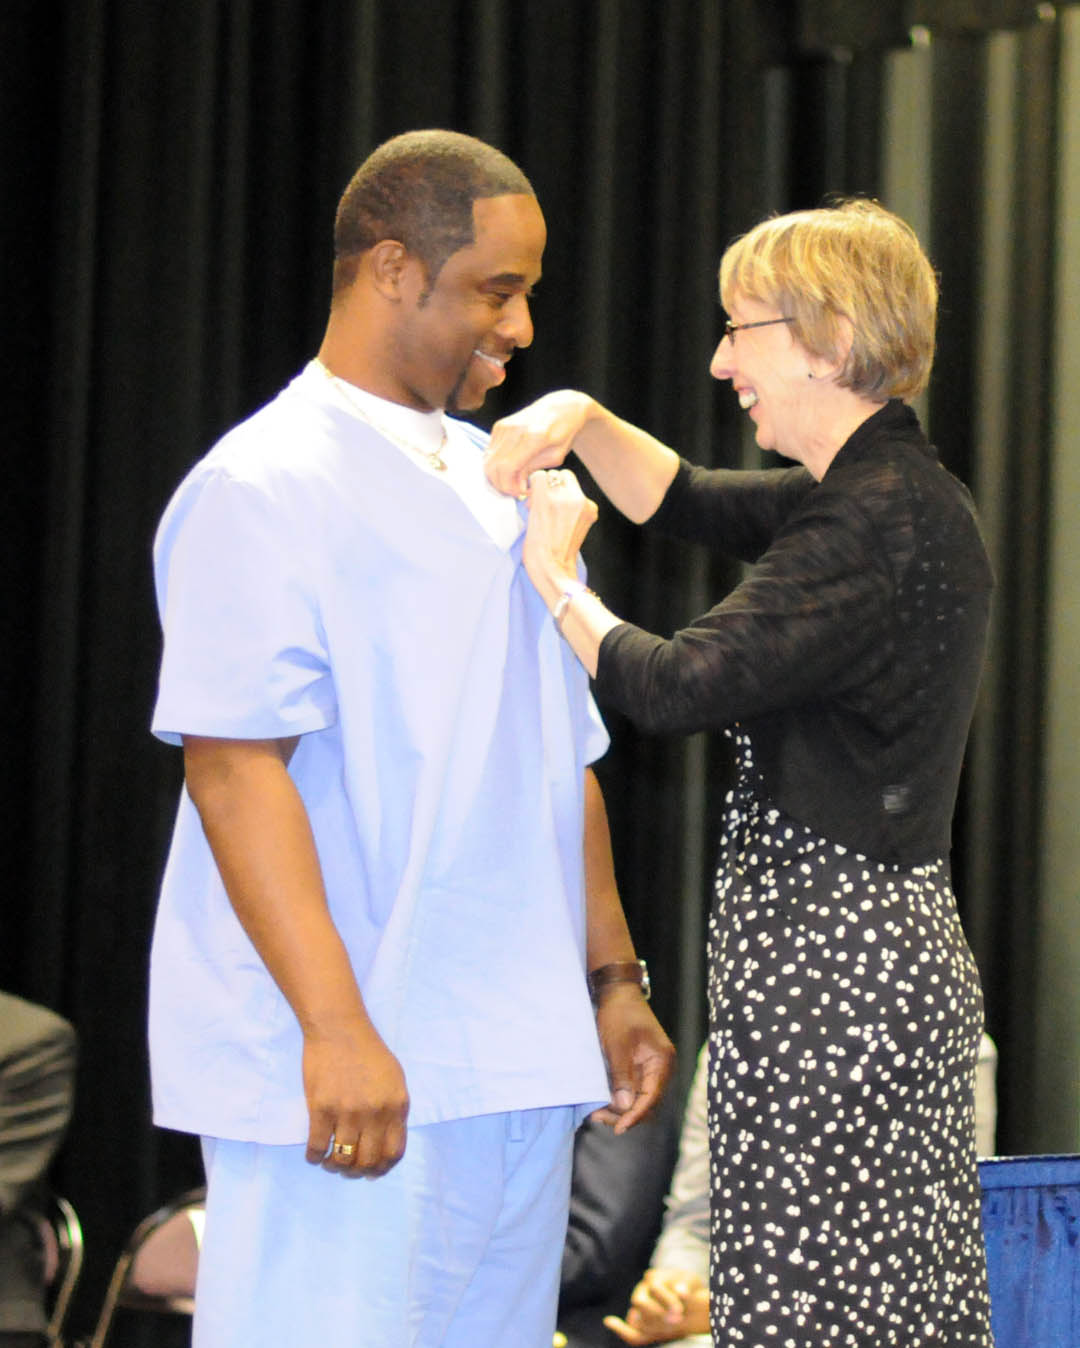 CCCC Con Ed holds medical graduation